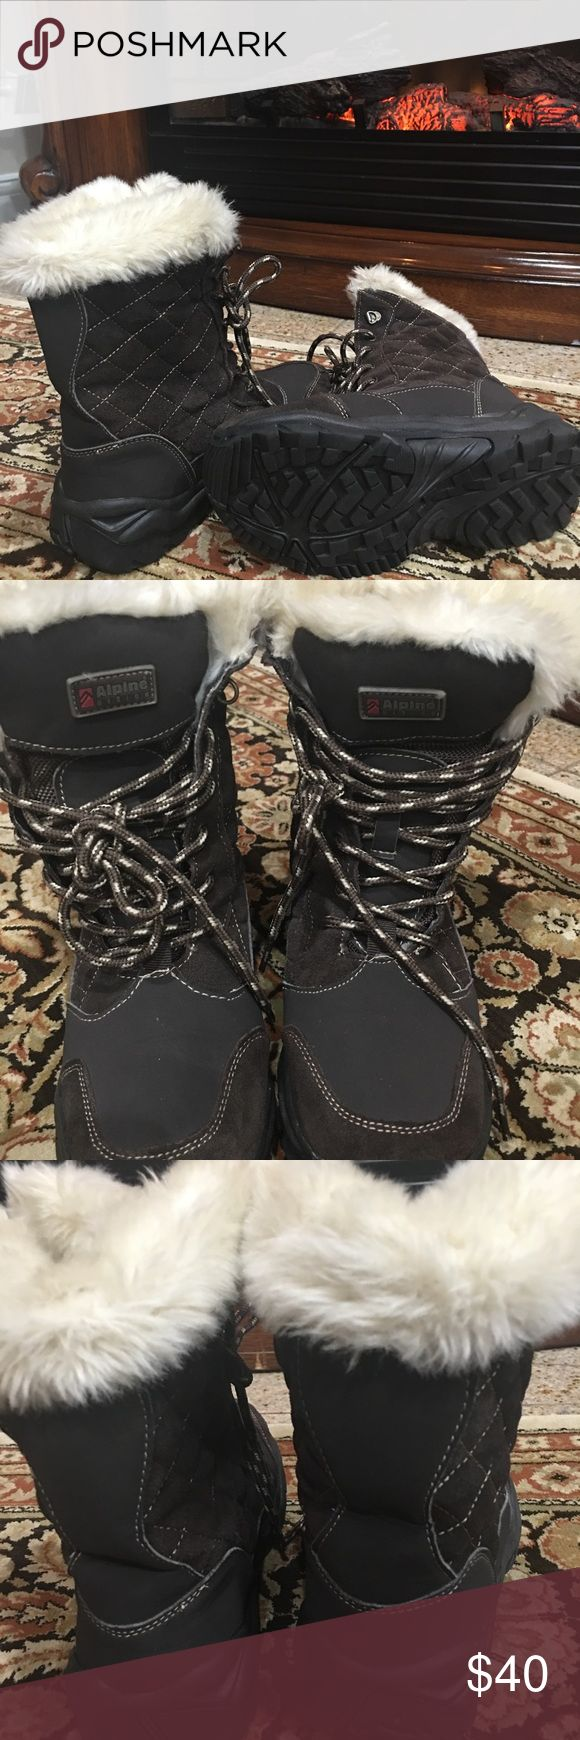 ALPINE DESIGN SNOW/WINTER WOMAN 'S BOOT ALPINE DESIGN SNOW/WINTER WOMAN 'S BOOTS SIZE 6  LEATHER MAN MADE UPER  FAUX FUR USED IN GREAT CONDITION ALPINE DESIGN Shoes Winter & Rain Boots